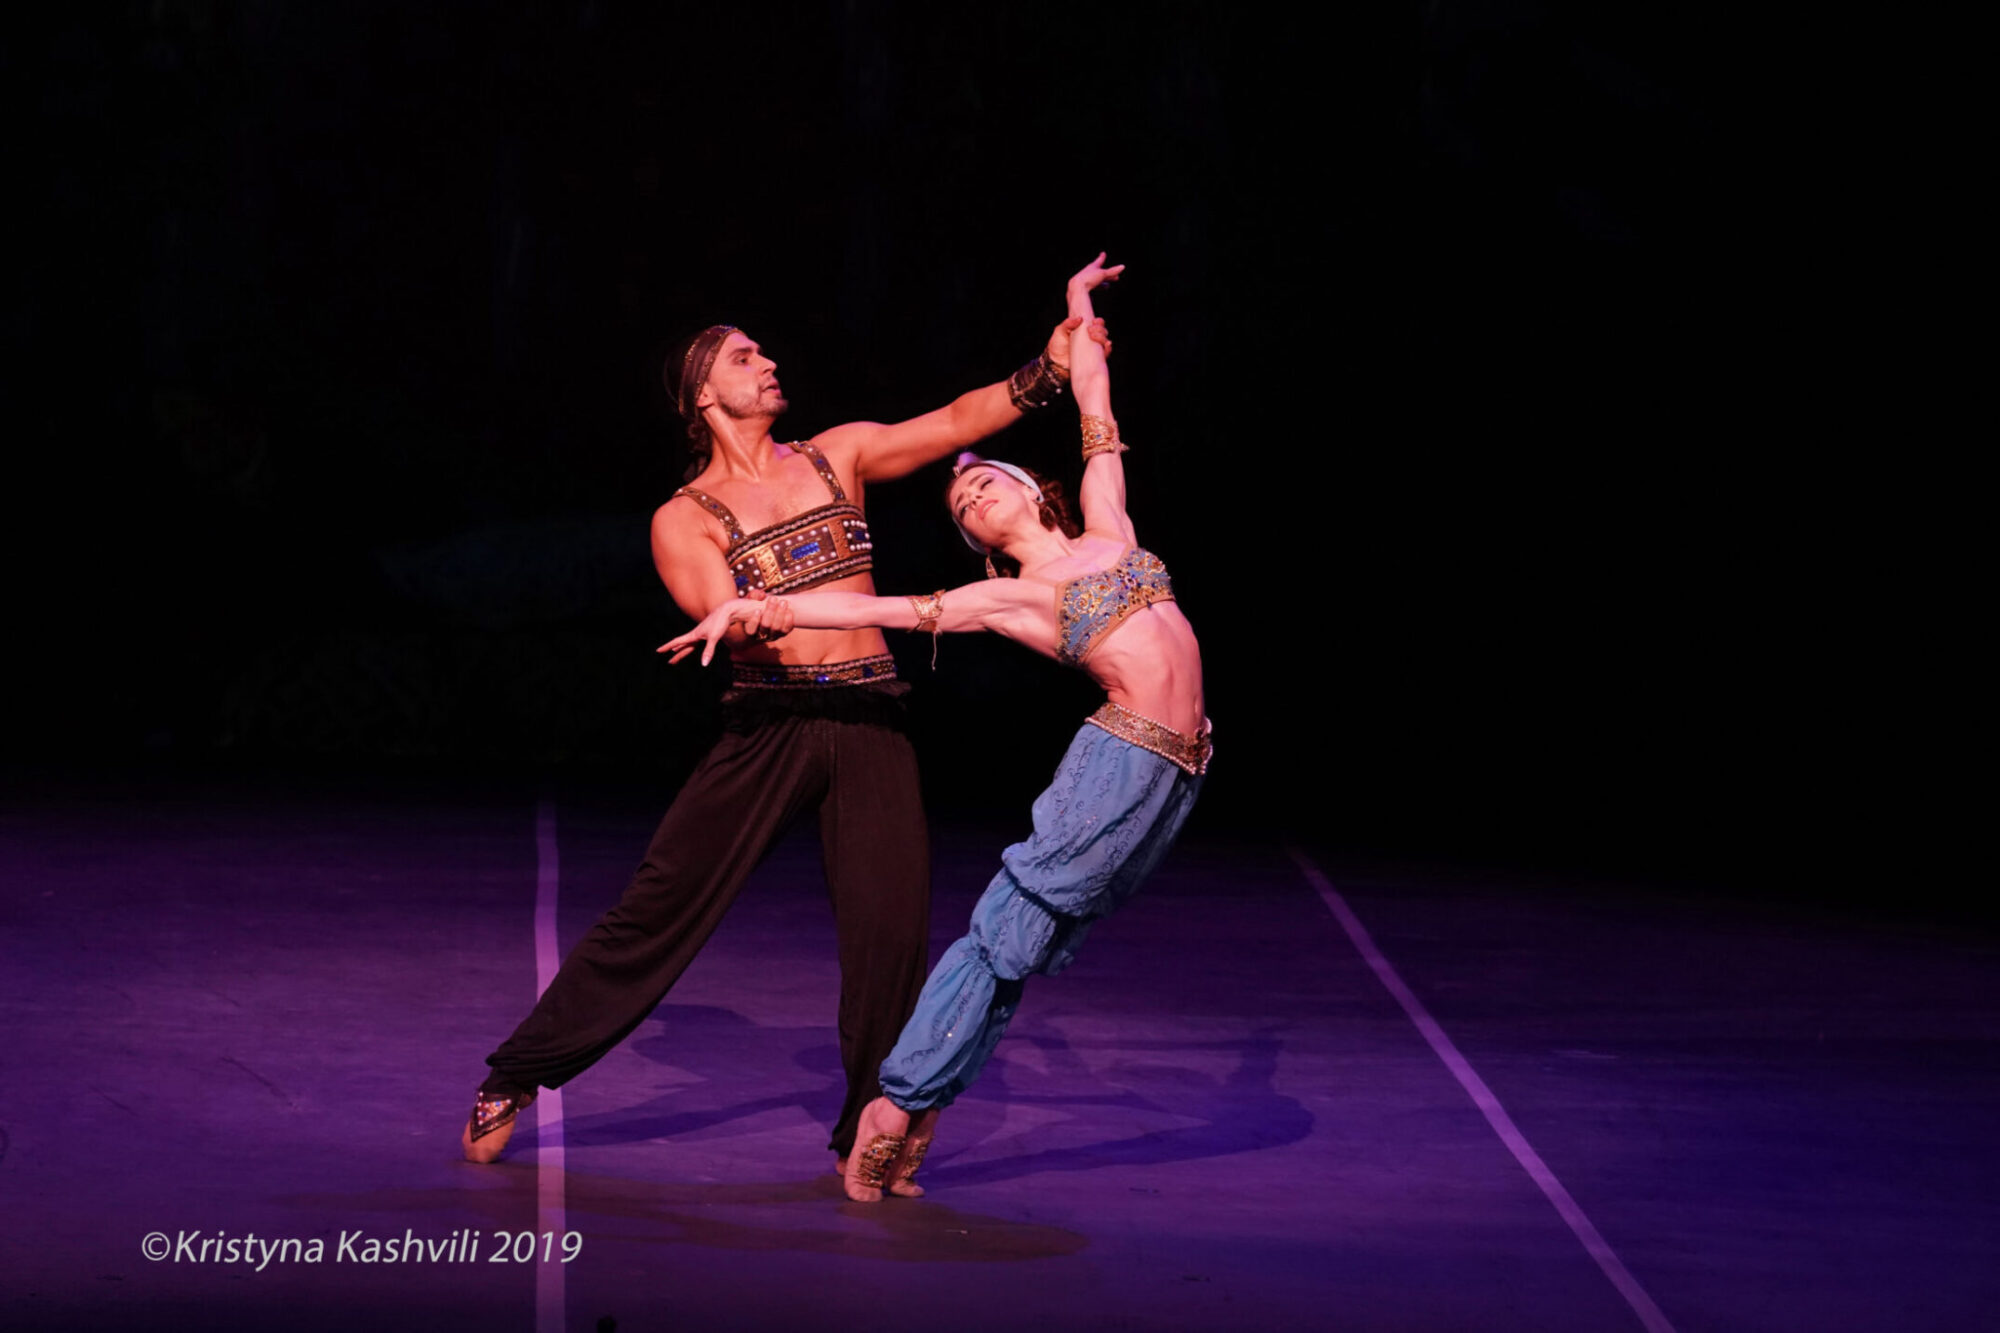 LONDON, ENGLAND - MARCH 31, 2019. Russian Ballet Icons Gala: Ekaterina Krysanova and Ivan Vasiliev in Scheherazade. (Photo by Kristyna Kashvili)